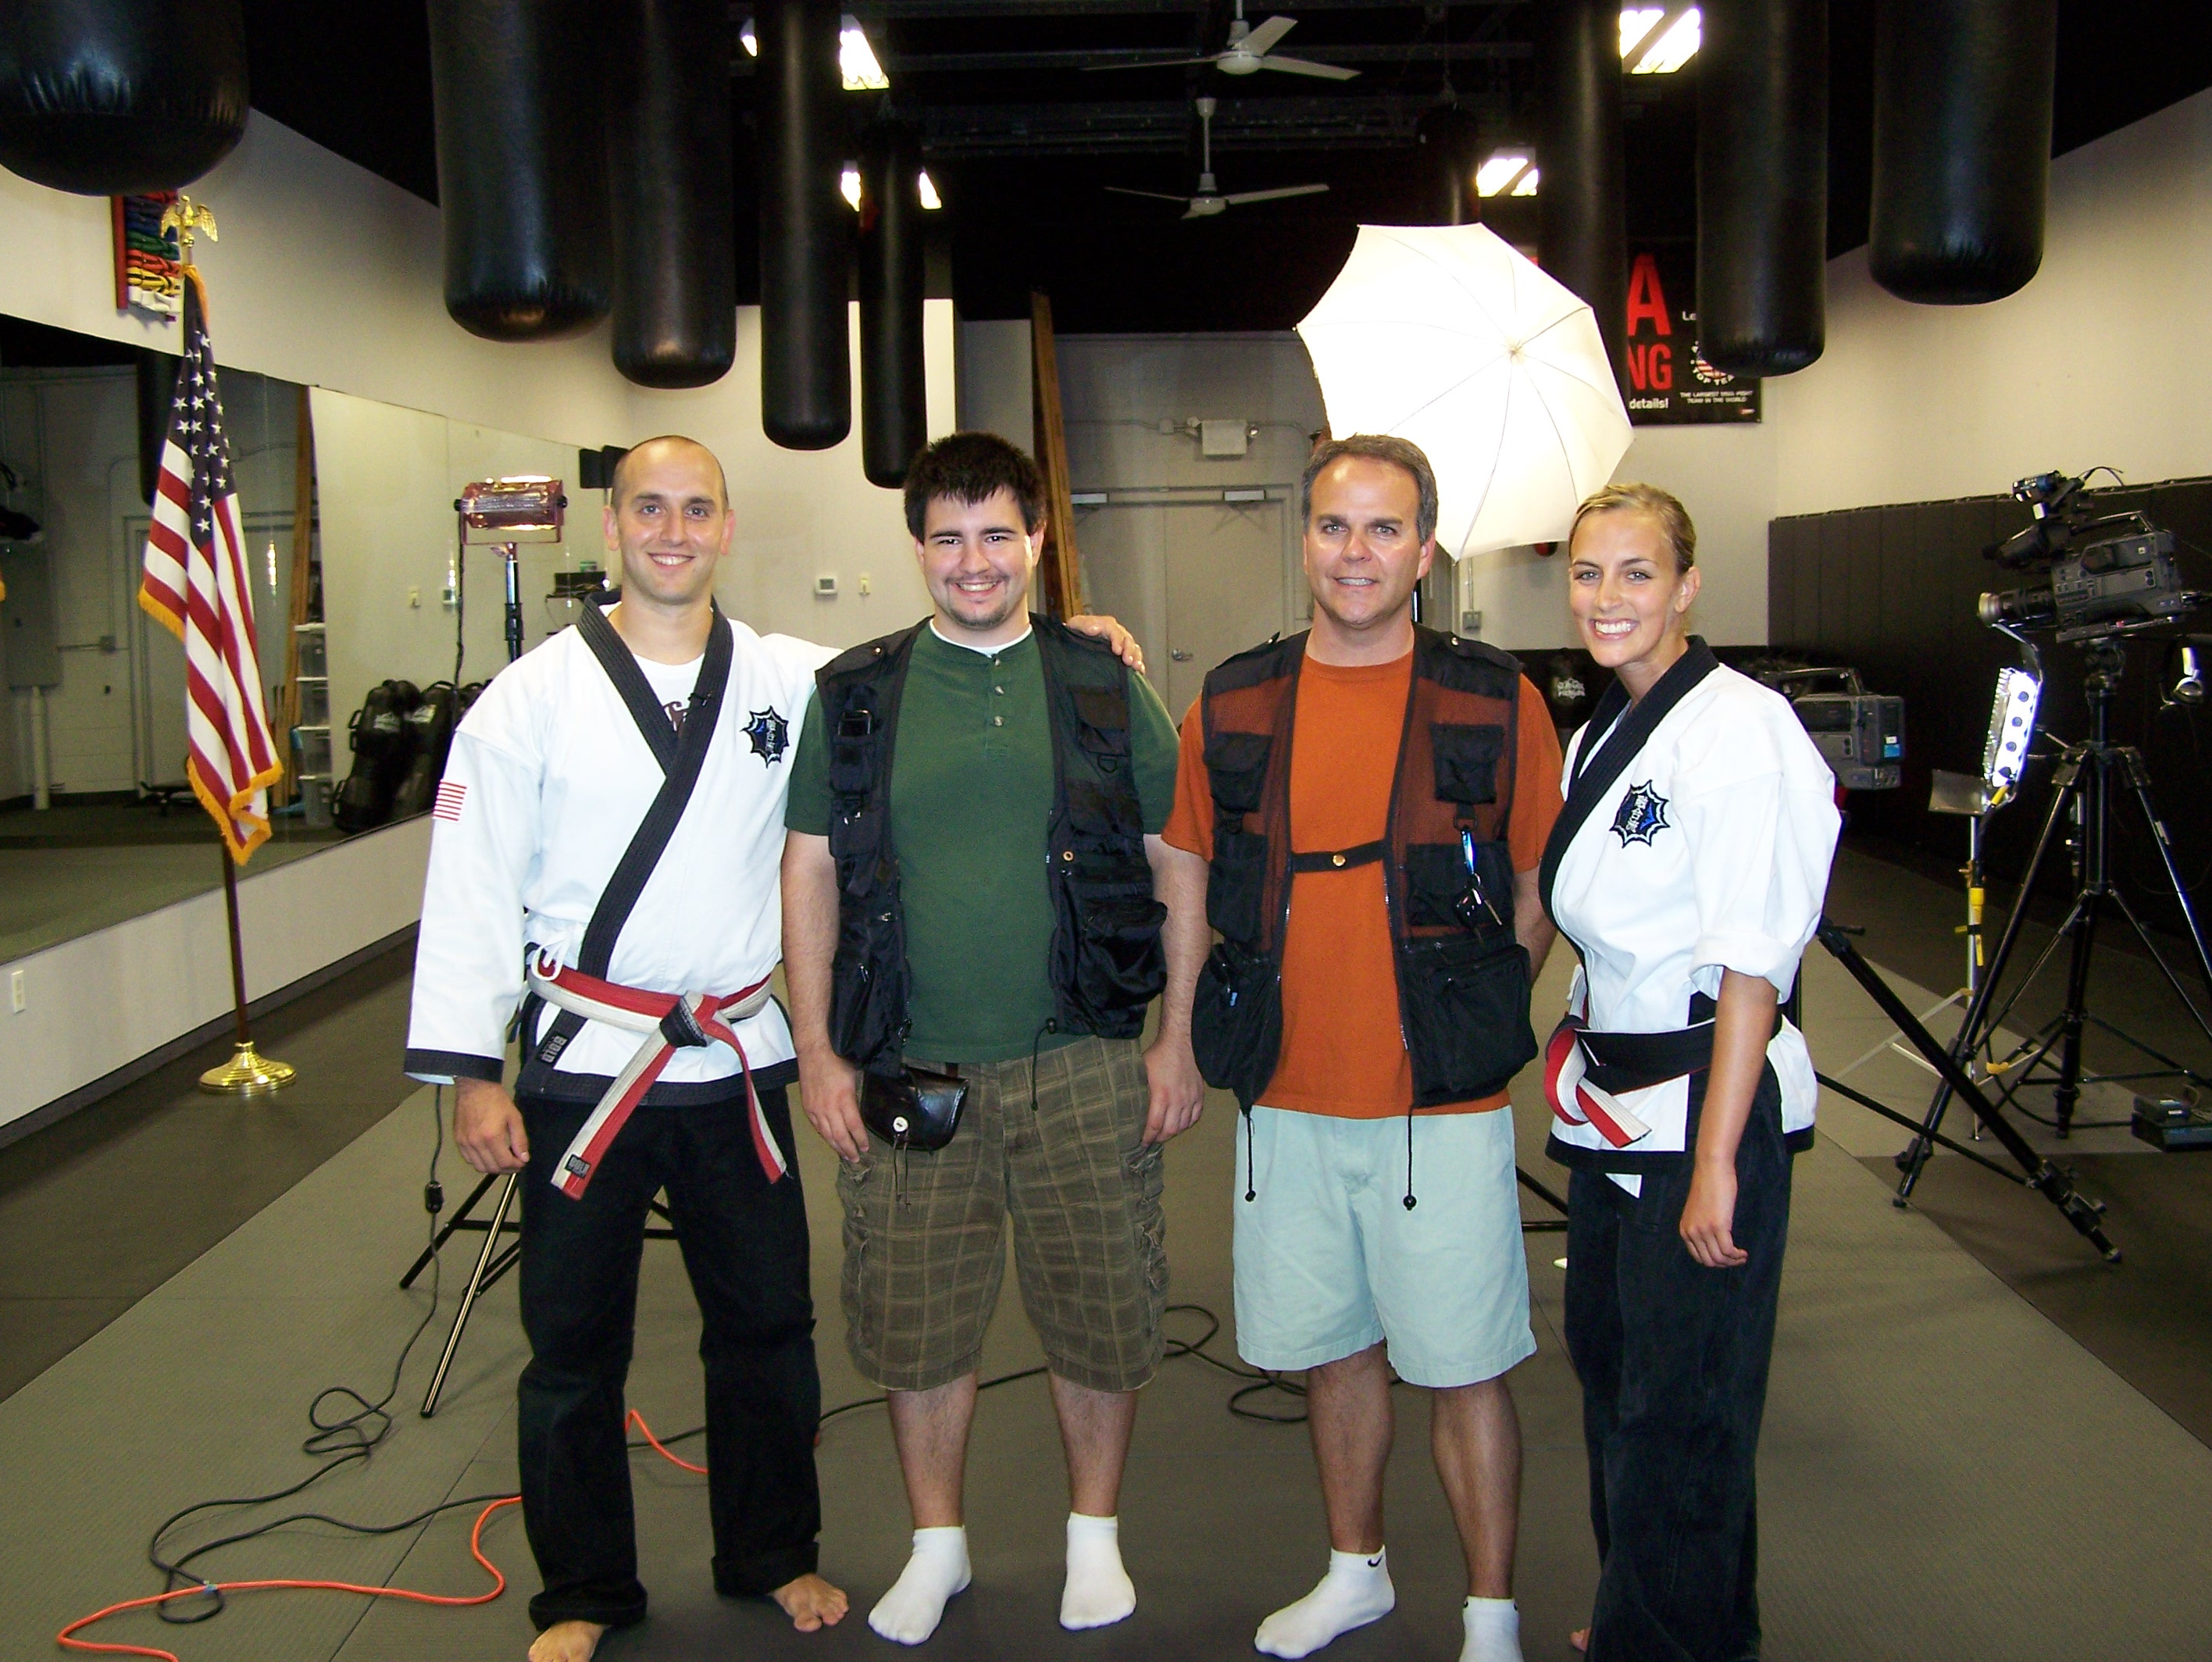 https://0201.nccdn.net/1_2/000/000/088/e60/Karate-Dojo-shoot-004---Copy-2832x2128.jpg